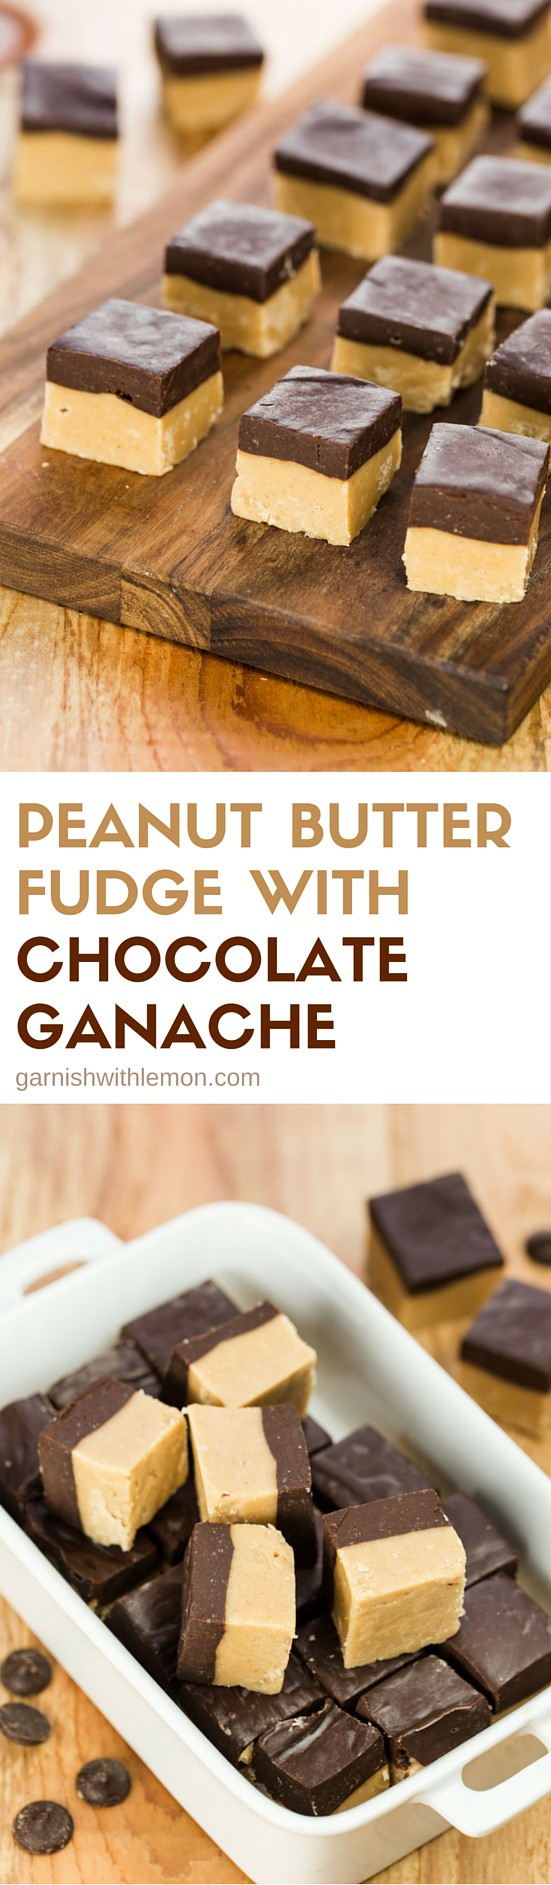 Who can say no to Peanut Butter Fudge, especially when it has a layer of chocolate ganache on top? Certainly not me!